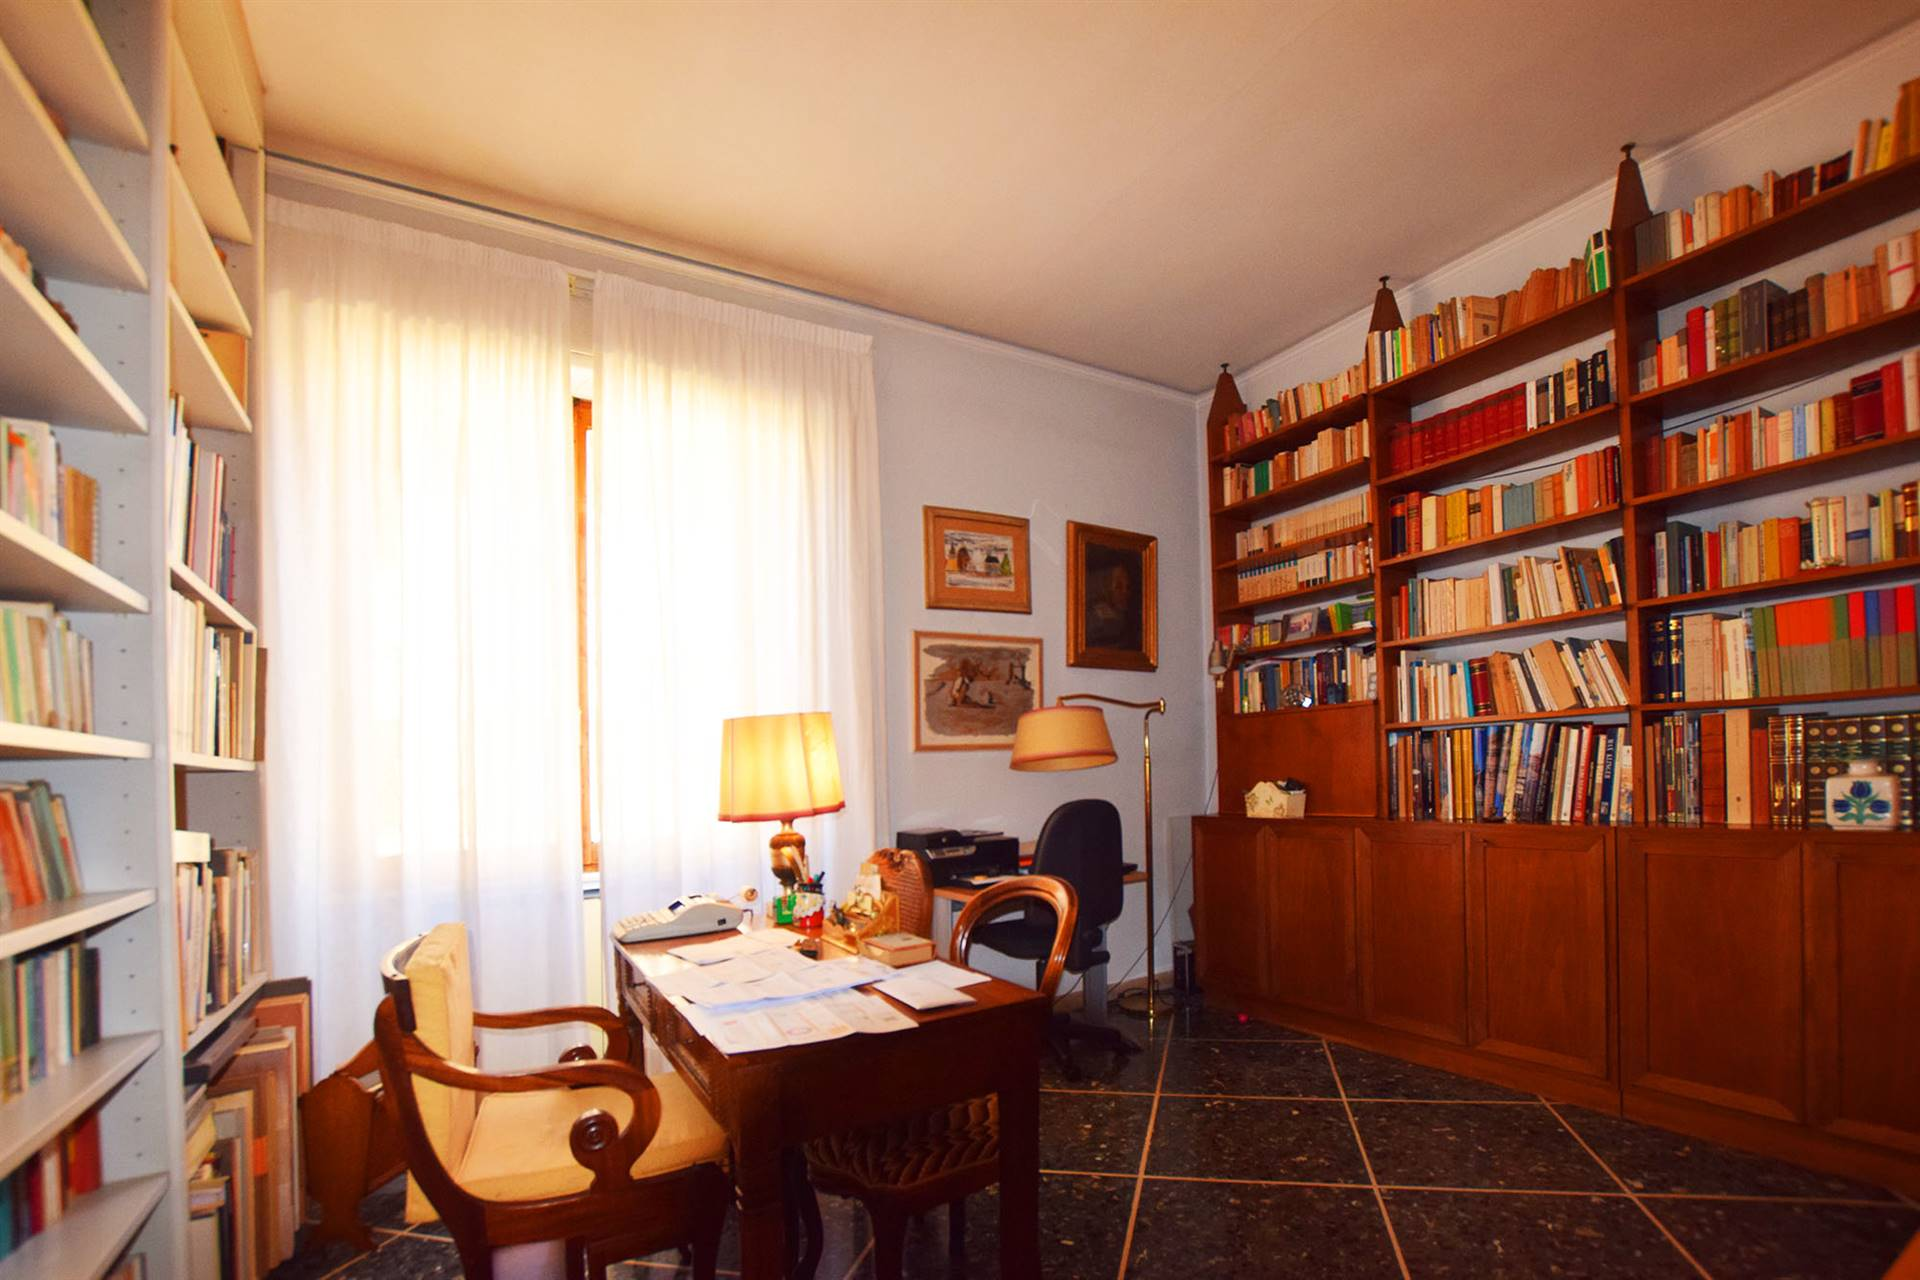 CURE, FIRENZE, Apartment for sale of 223 Sq. mt., Good condition, Heating Individual heating system, Energetic class: G, Epi: 250 kwh/m2 year, placed